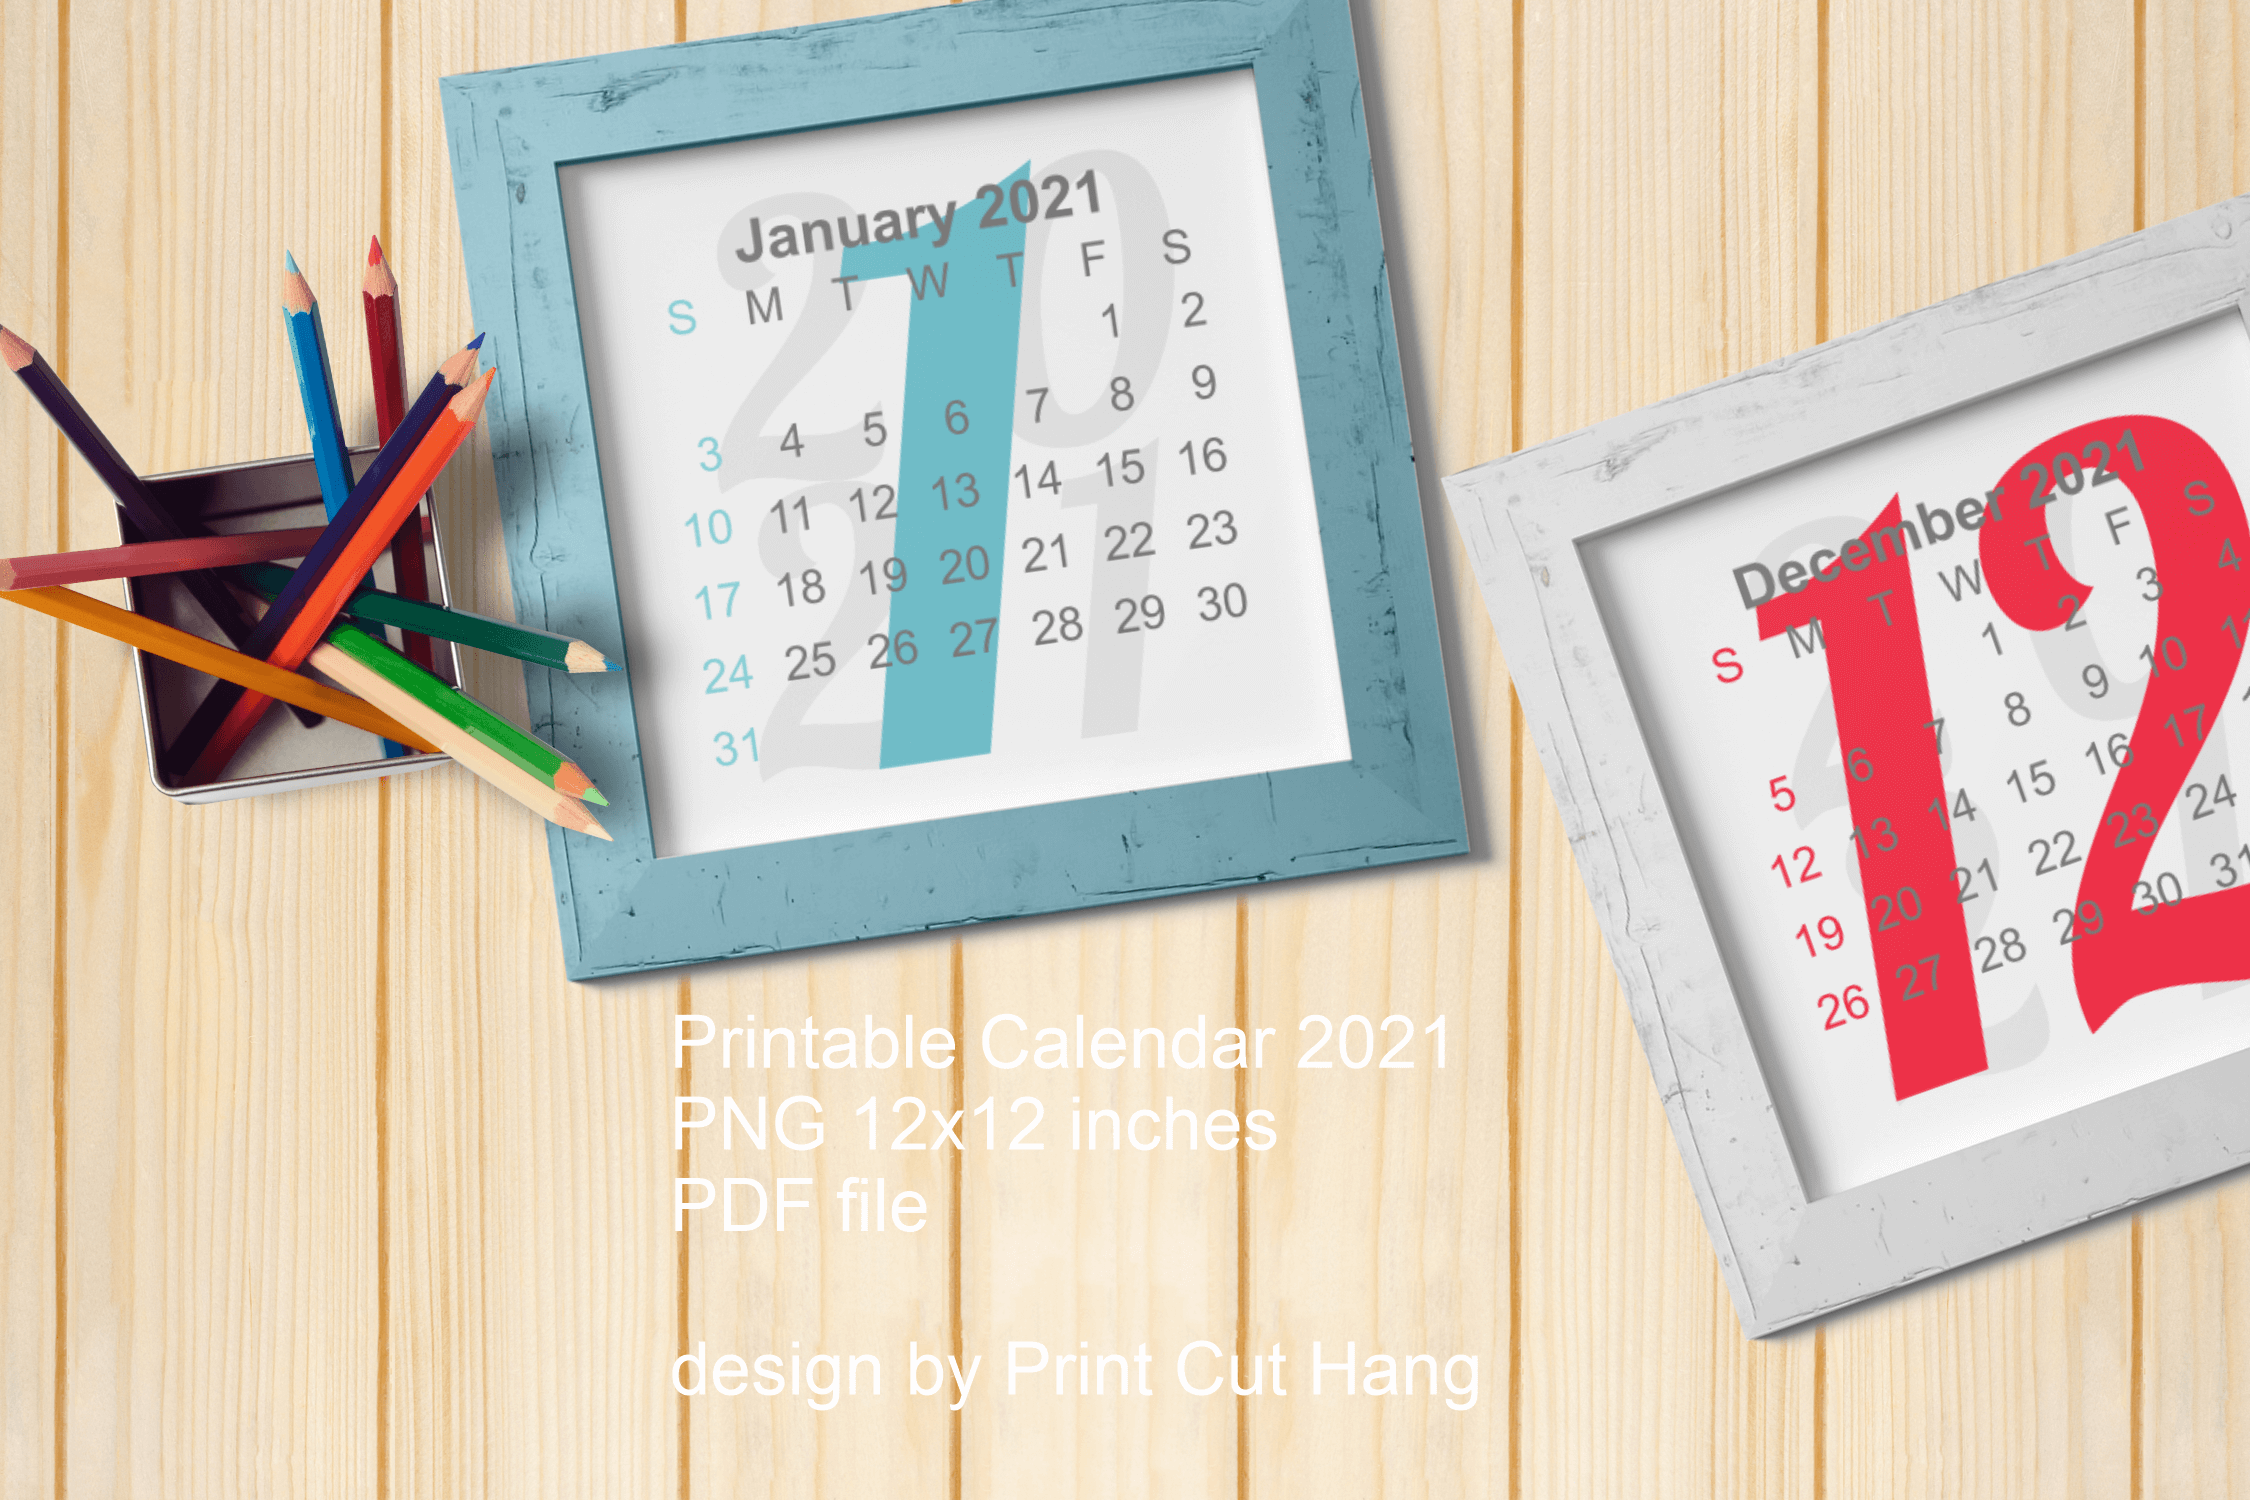 Download Free 2021 Calendar Cover All Months Graphic By Print Cut Hang for Cricut Explore, Silhouette and other cutting machines.